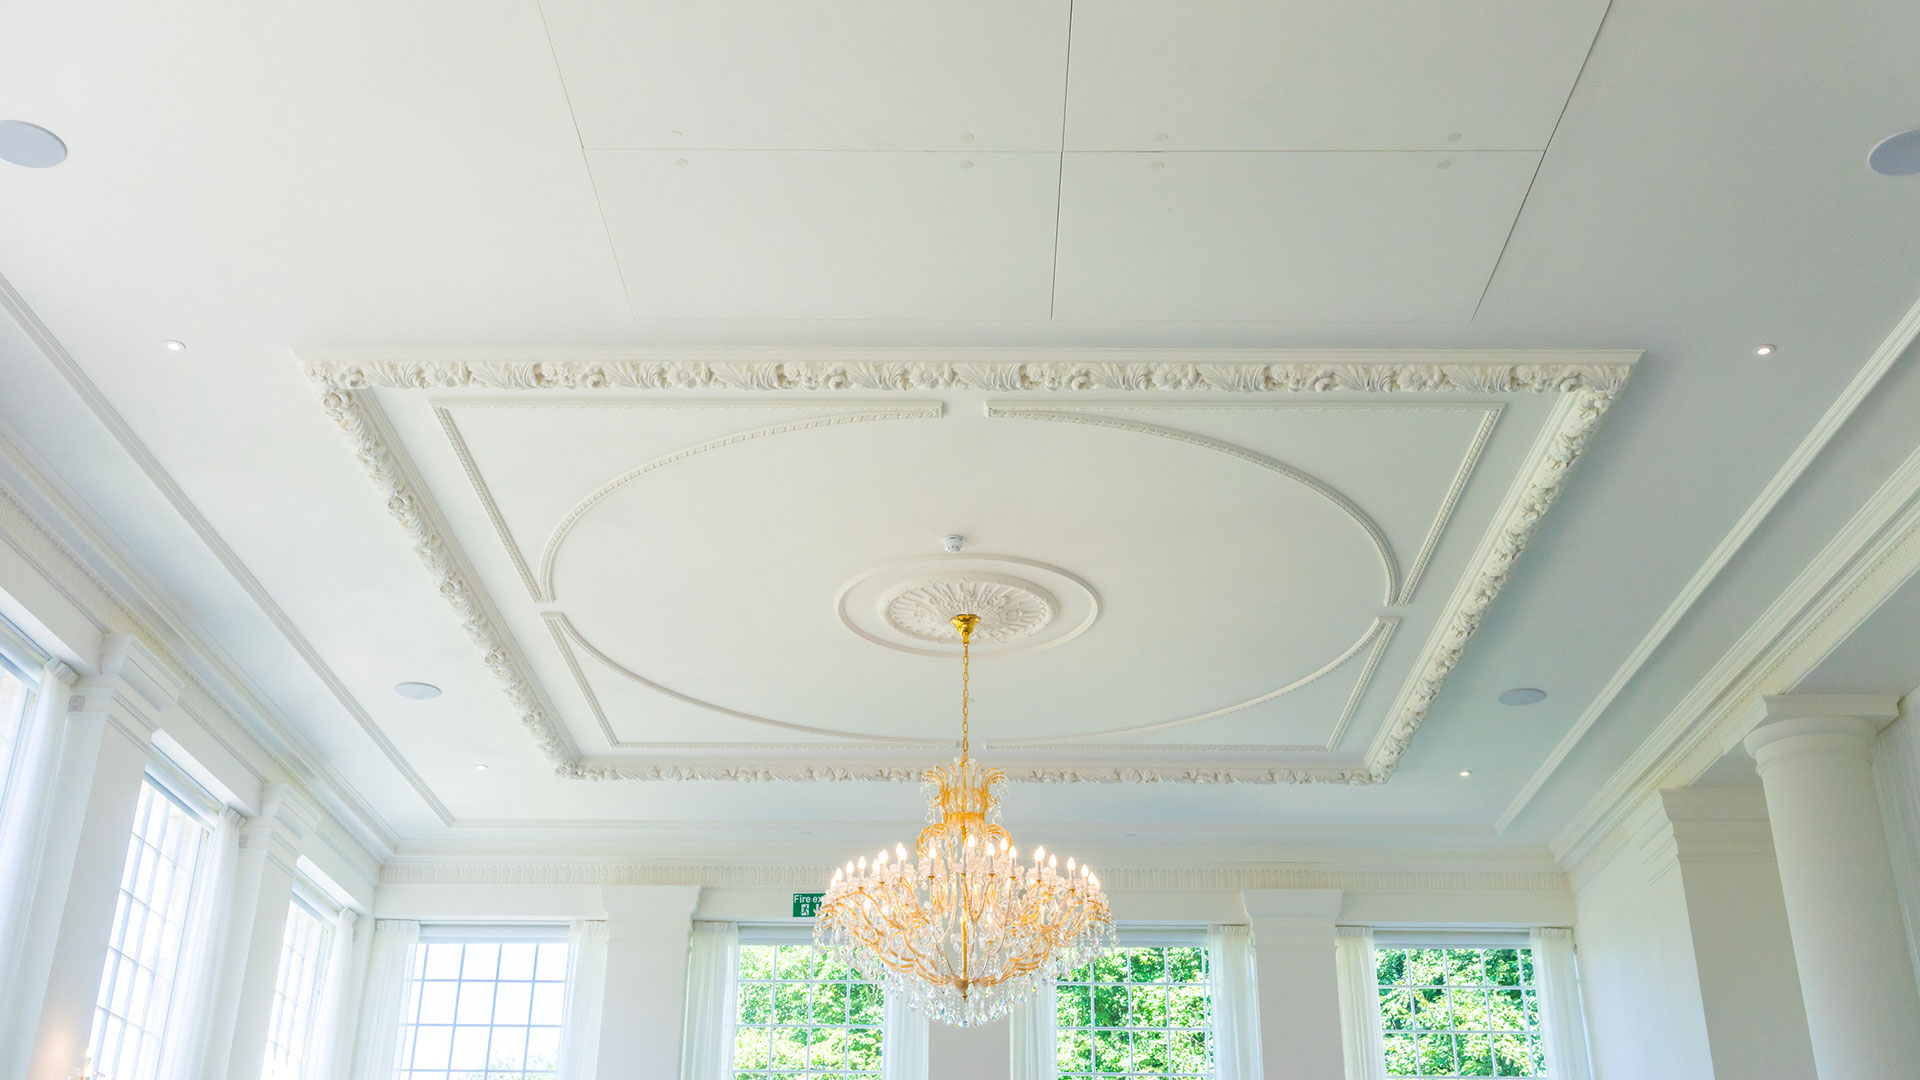 rushton hall ceiling access panels